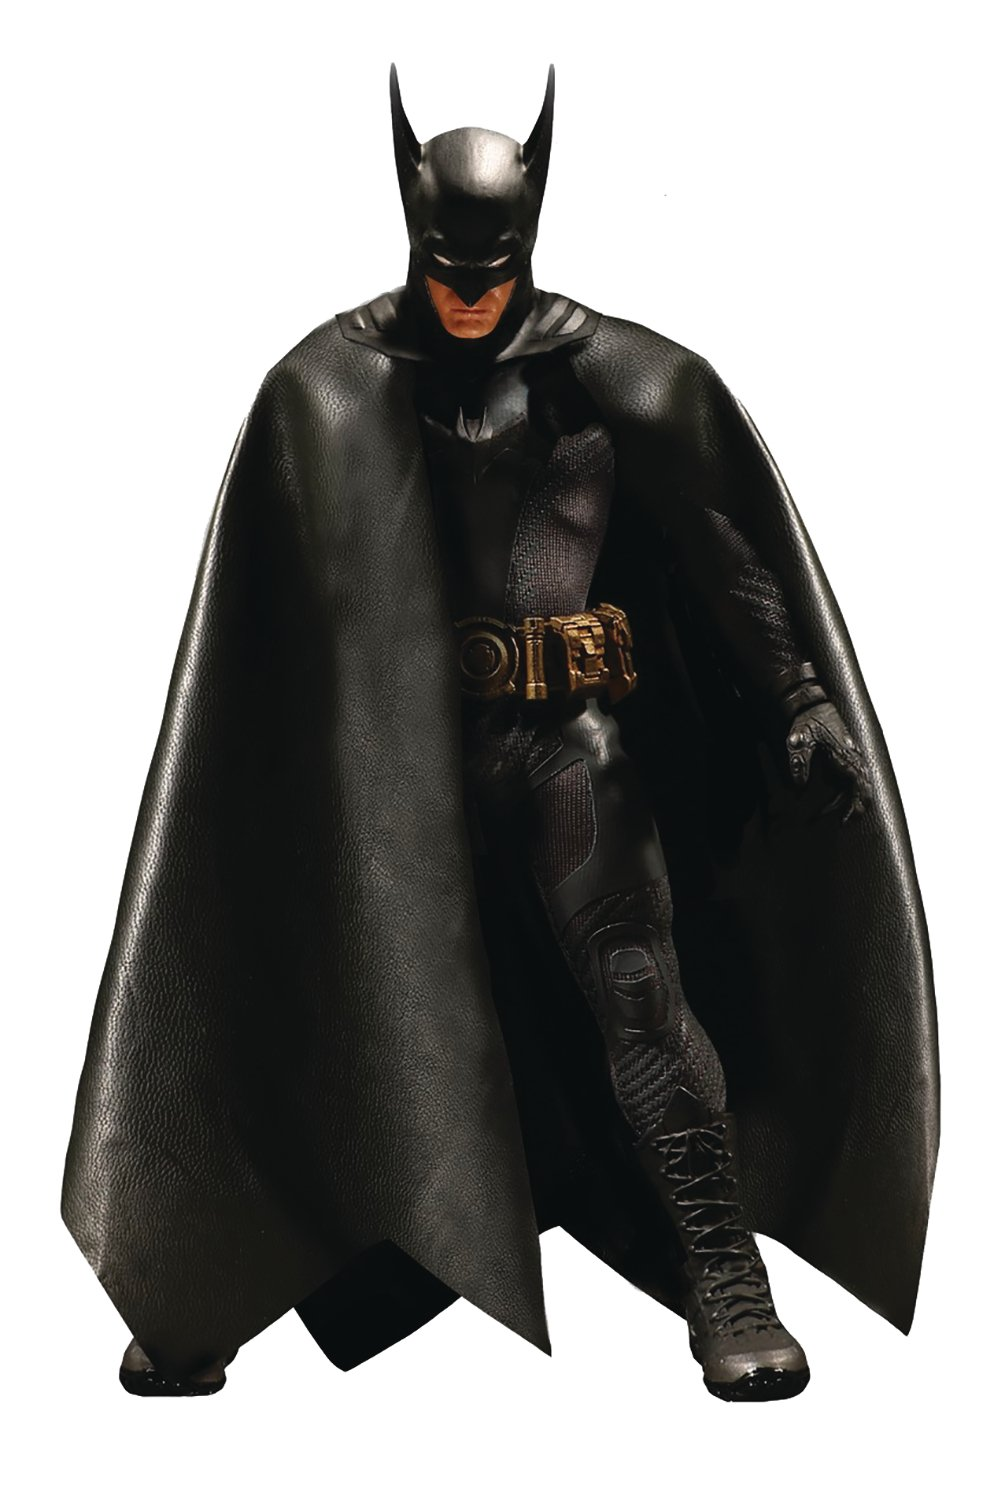 Felices compras Mezco Toys One:12 Collective: DC Ascending Ascending Ascending Knight Batman Action Figure  más orden